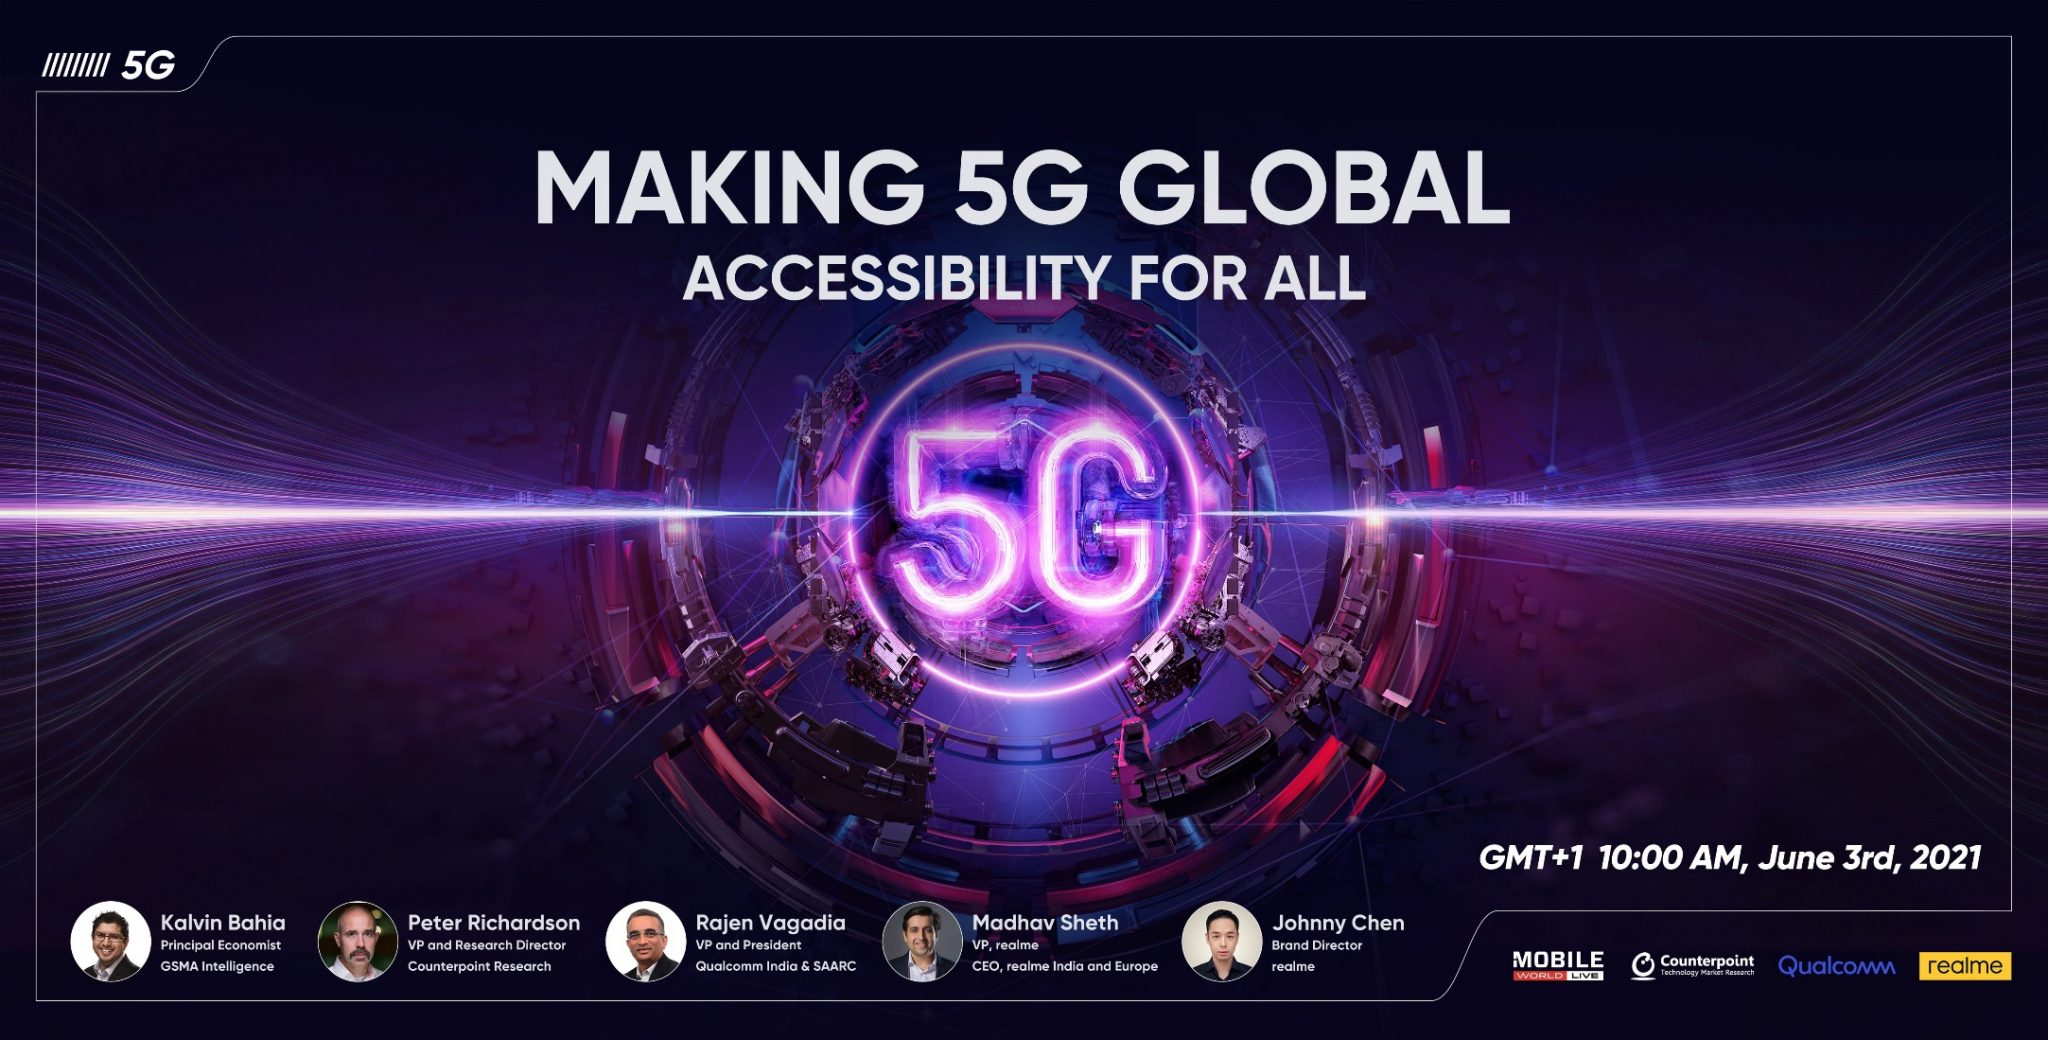 Artwork 1 1 - Realme 5G Summit Ends with a Commitment to Bring 5G Phones to 100 Million Young Consumers in Next Three Years